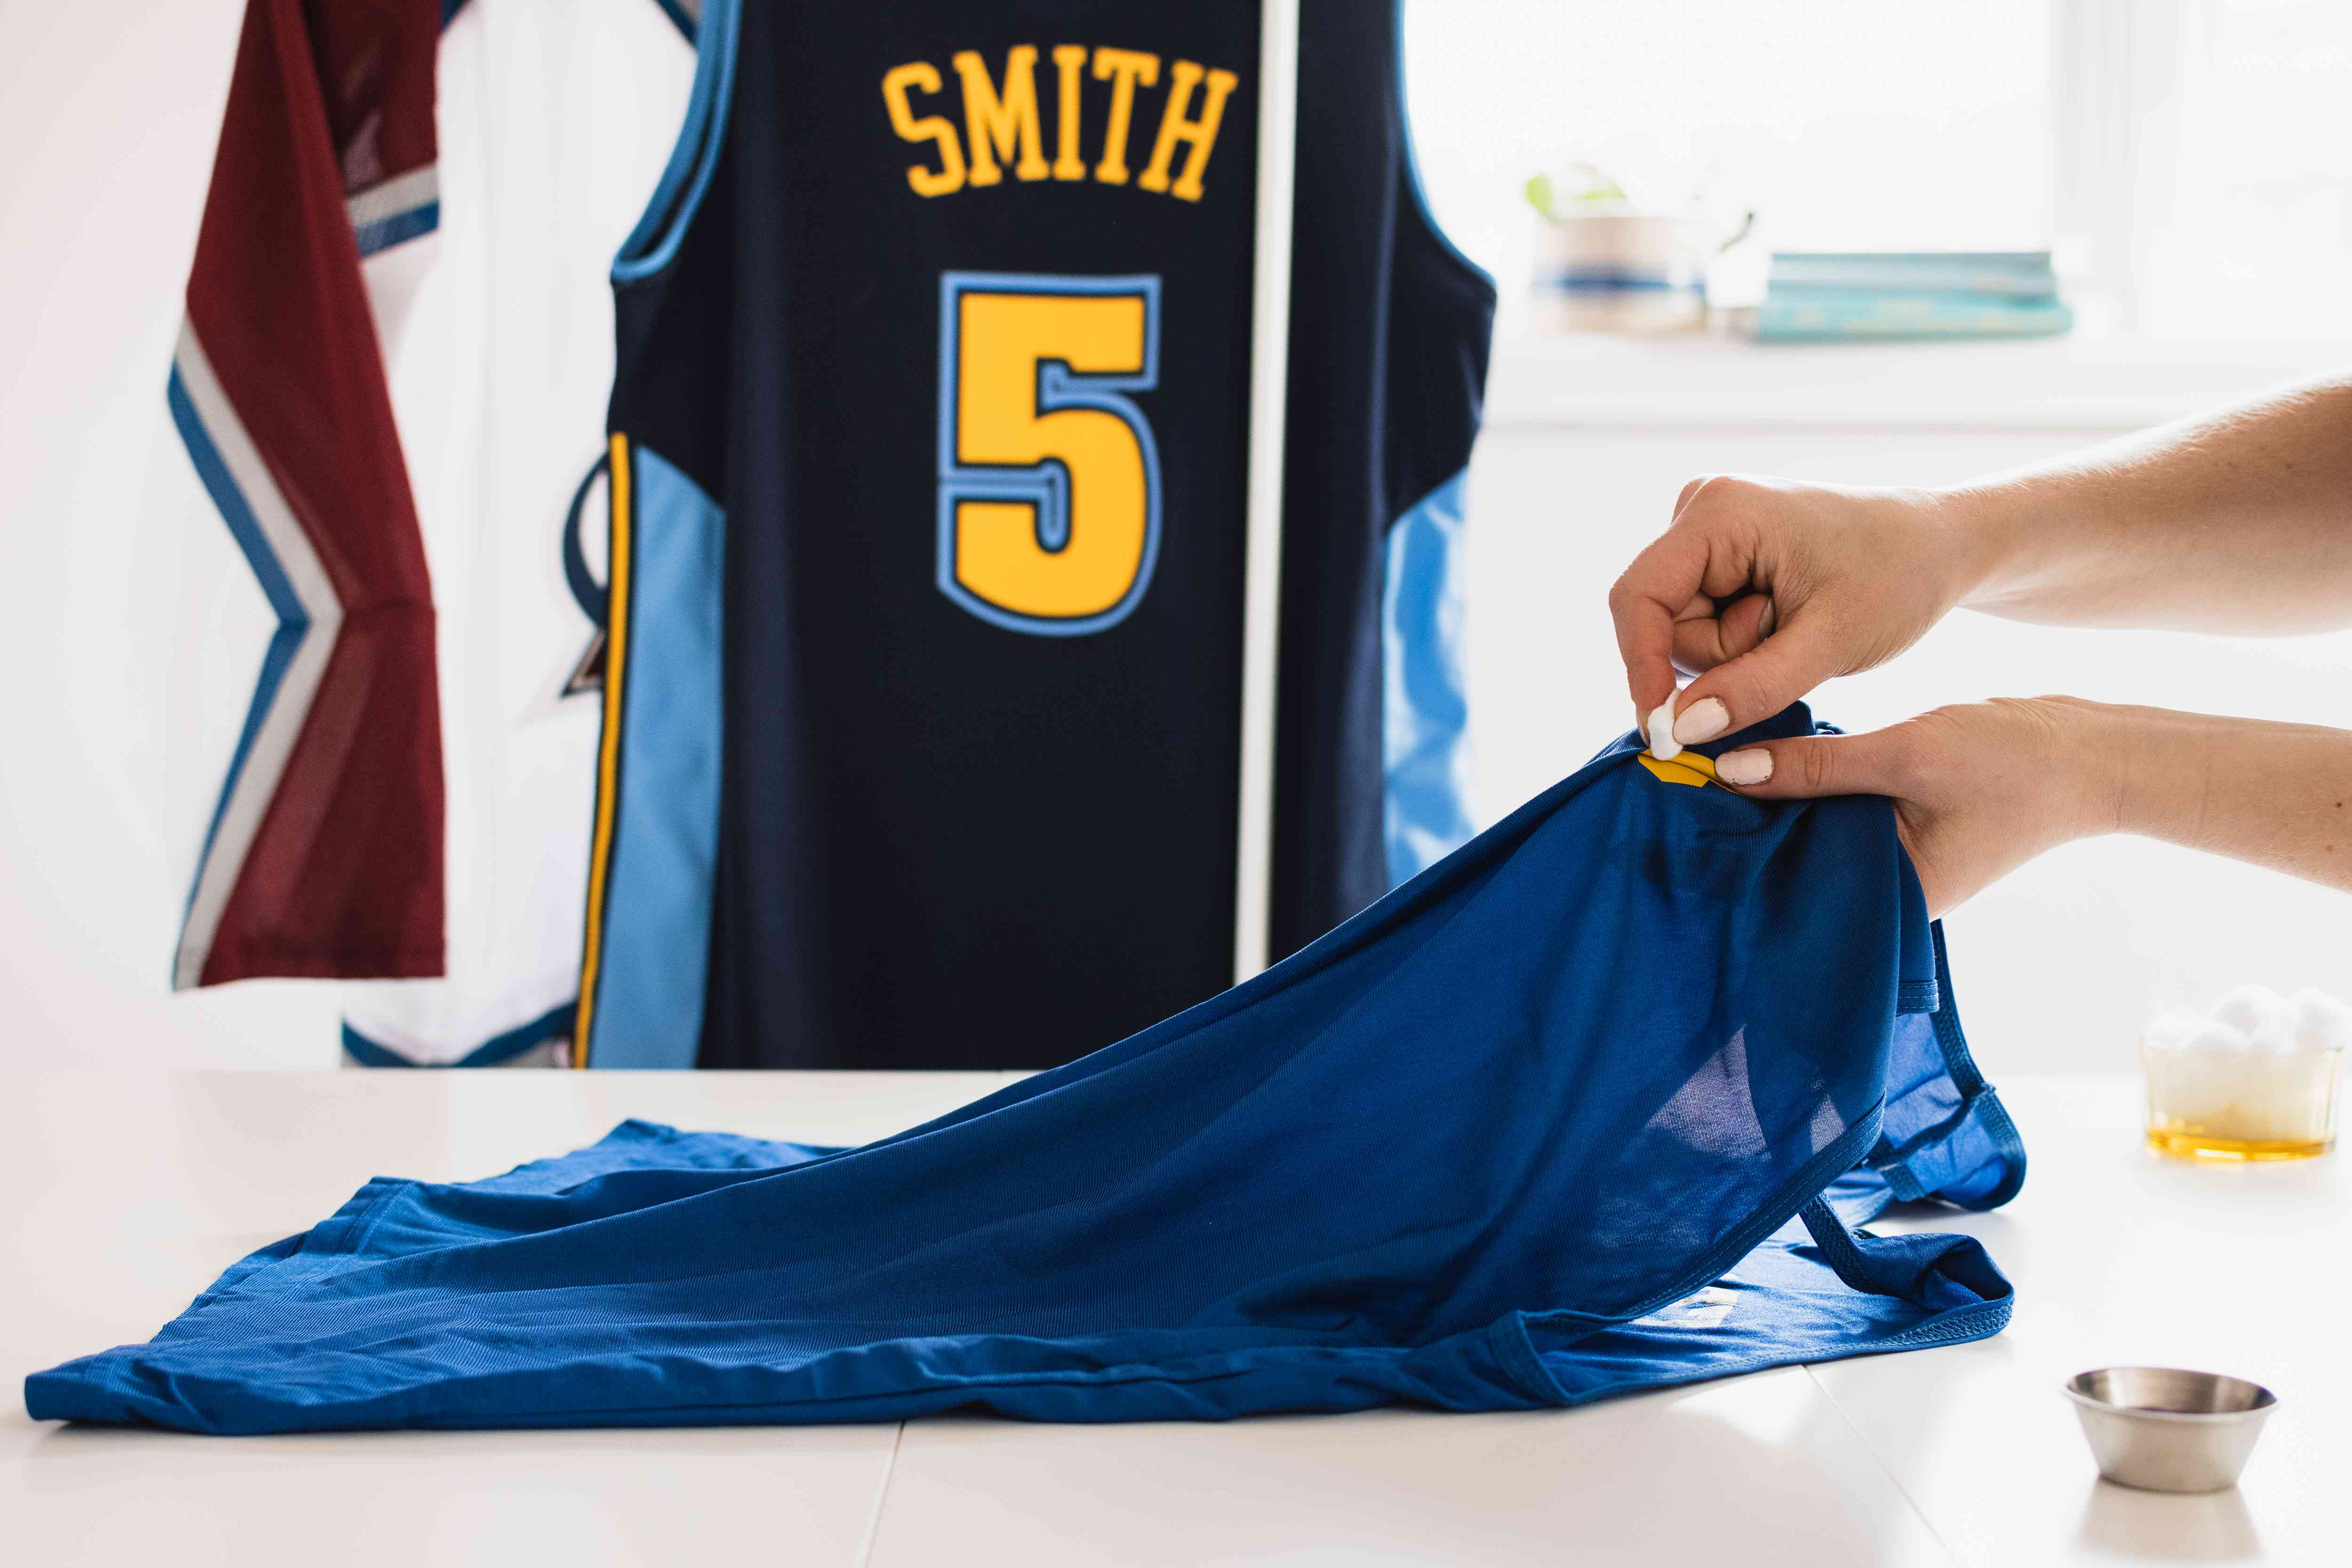 Separating melted lettering from team jersey with fingernail polish remover